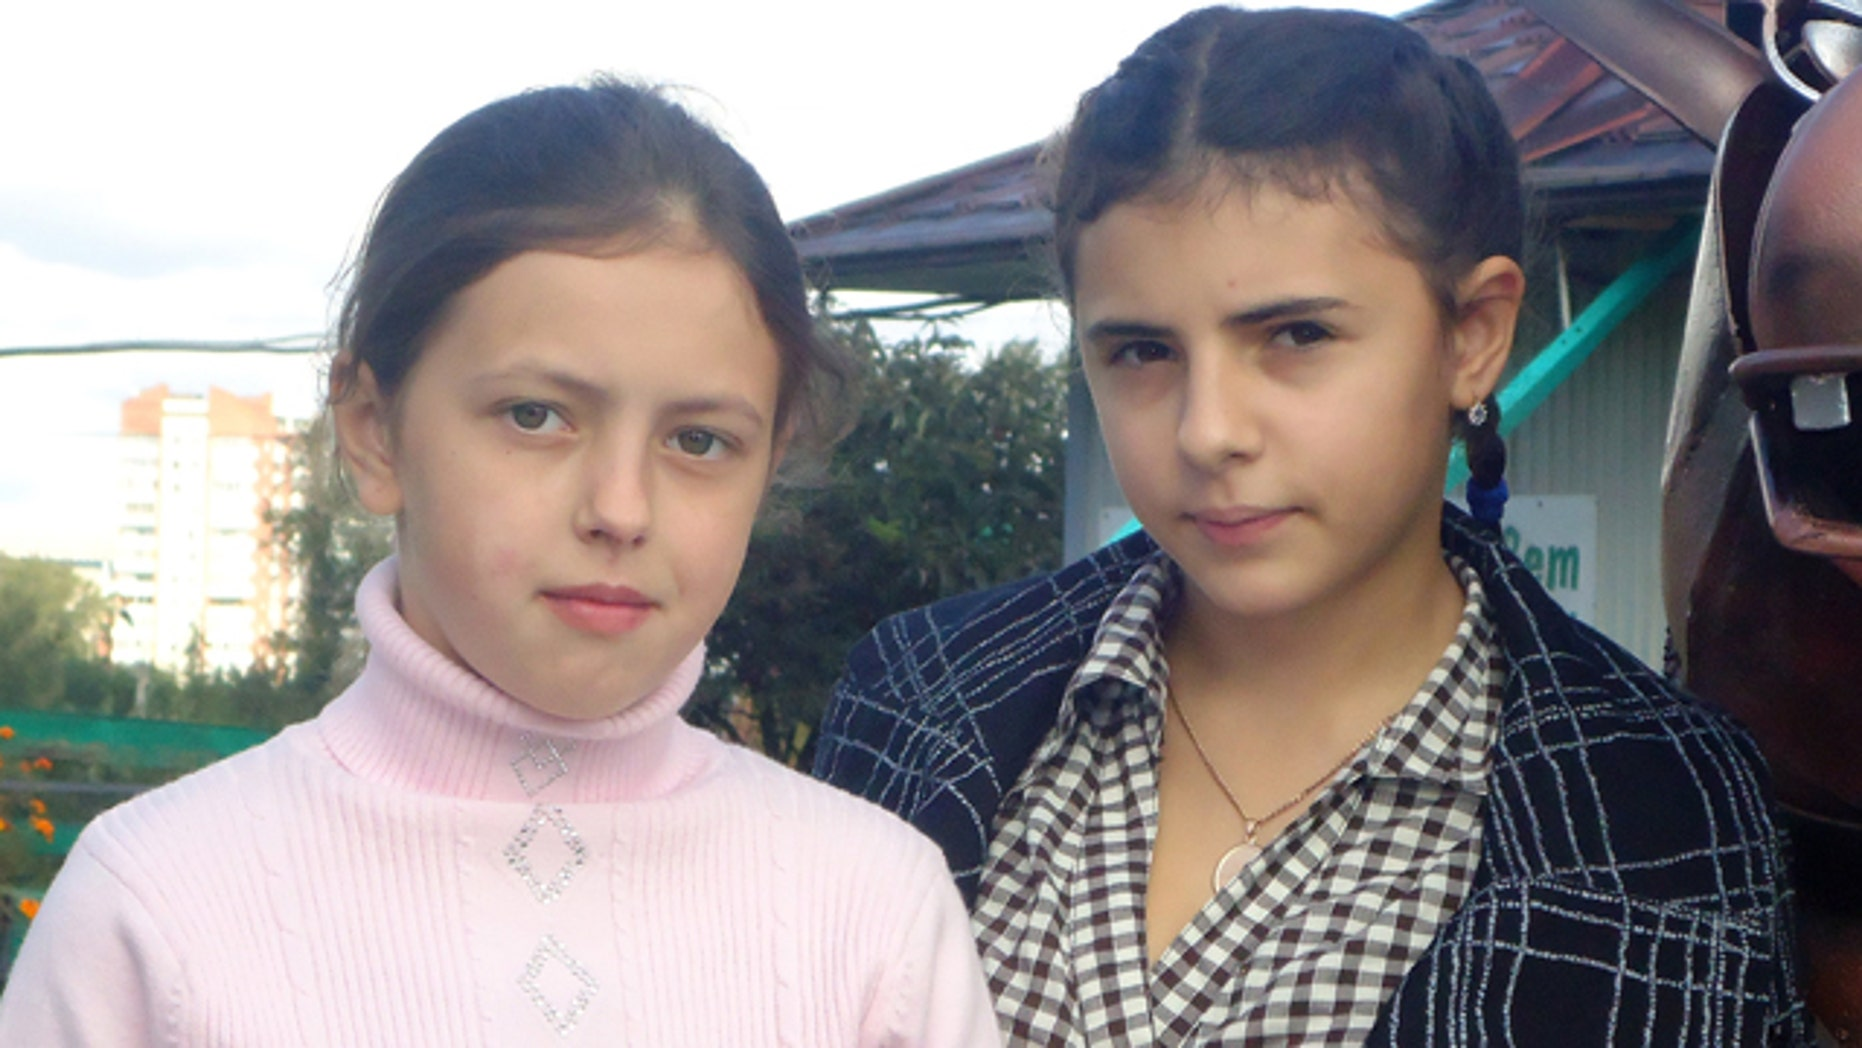 Sept. 11, 2011: 12-year-old Anna, left, and Irina, right, pose in the city of Kopeisk in Russia's Ural Mountains. Two Russian families on Monday won a US$100,000-compensation each from a maternity home that accidentally switched their 12-year old daughters at birth, but they remained at loss about how to fix their shattered lives.